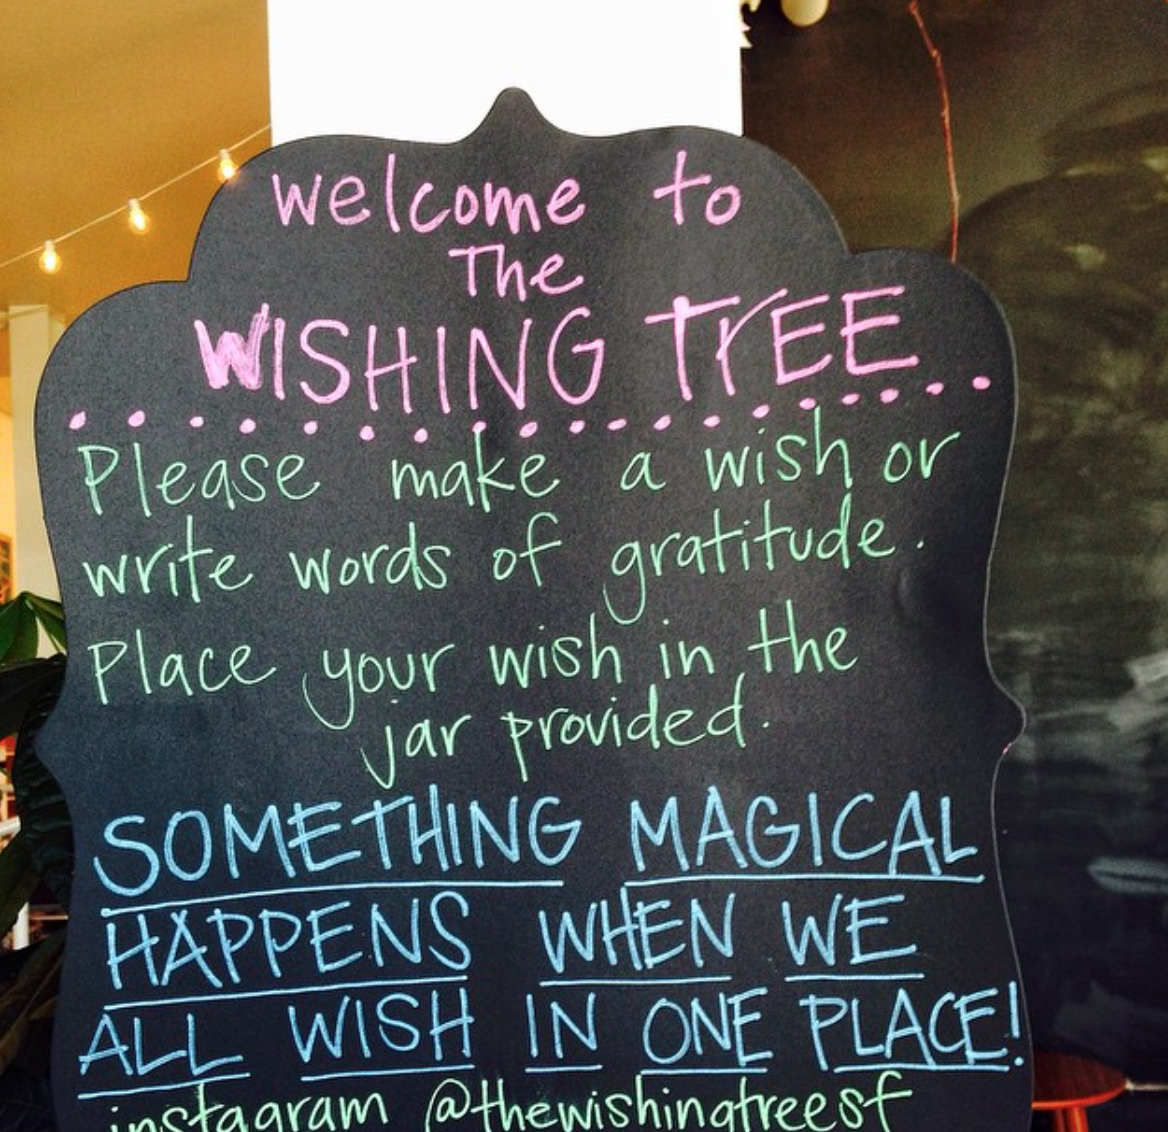 Photo: http://www.the-wishing-tree.com